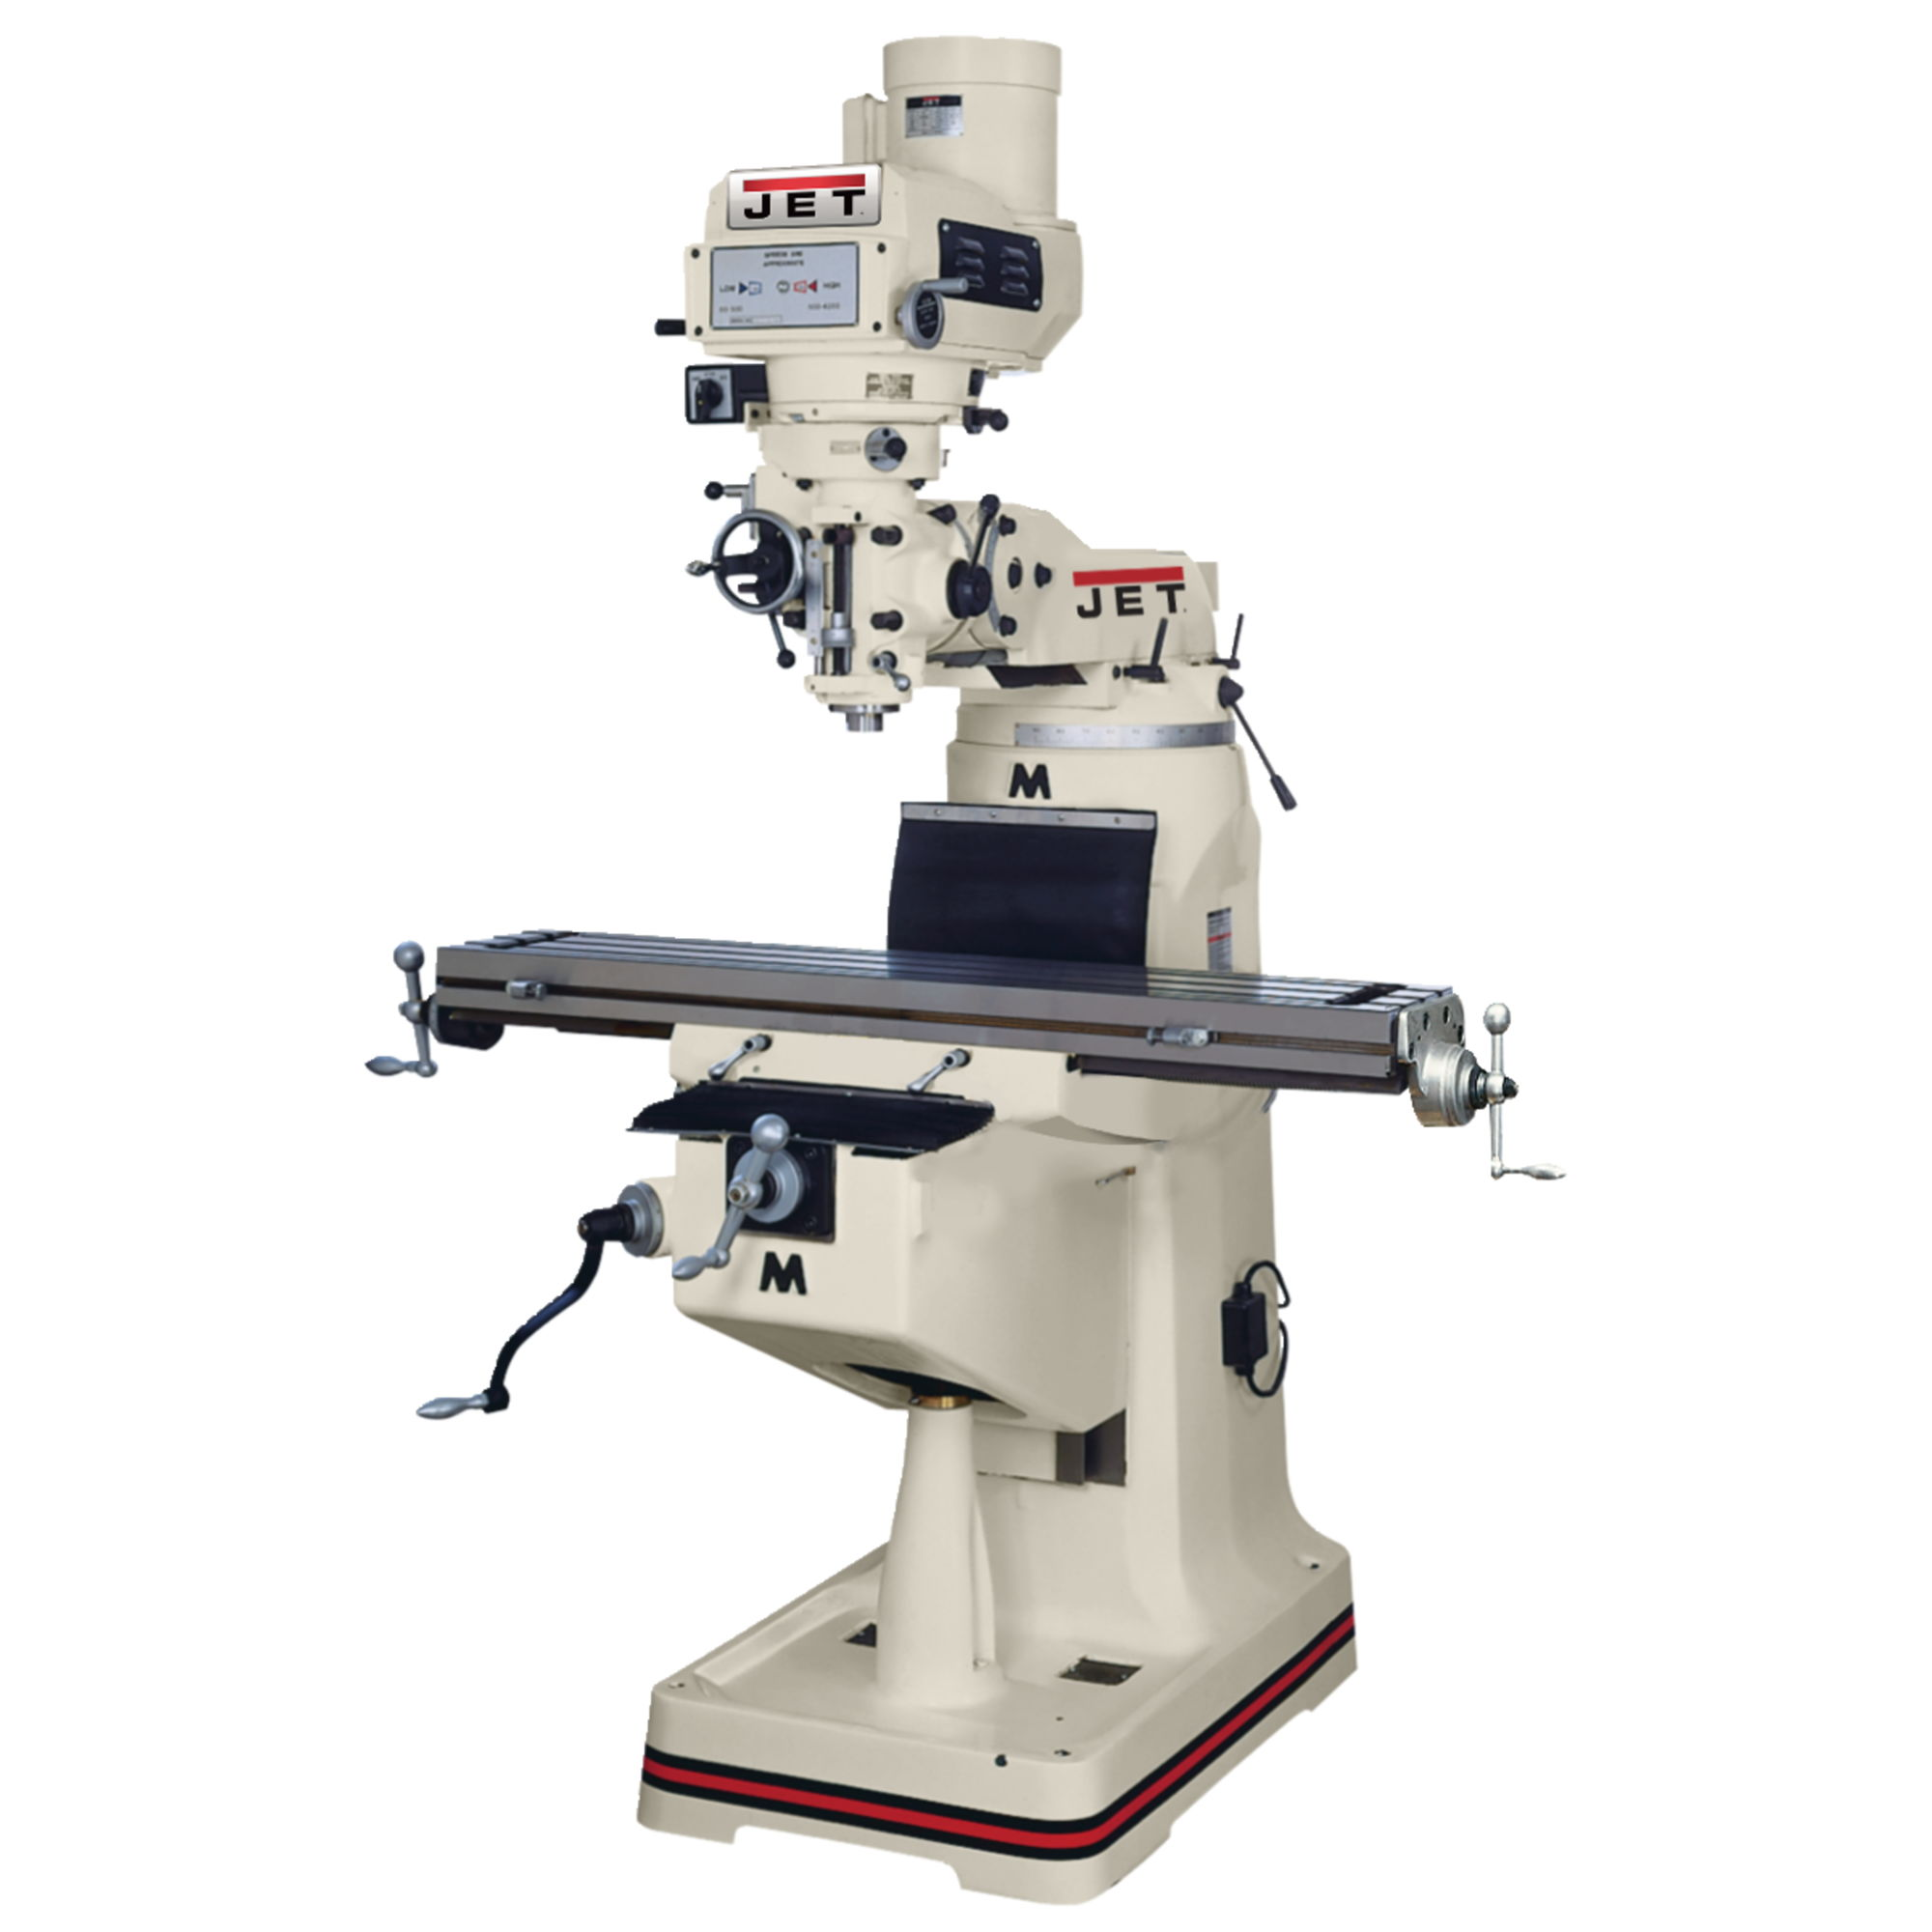 Jet 690052 JTM-1055R, Mill with VUE DRO, X-TPFA and Air Draw Bar